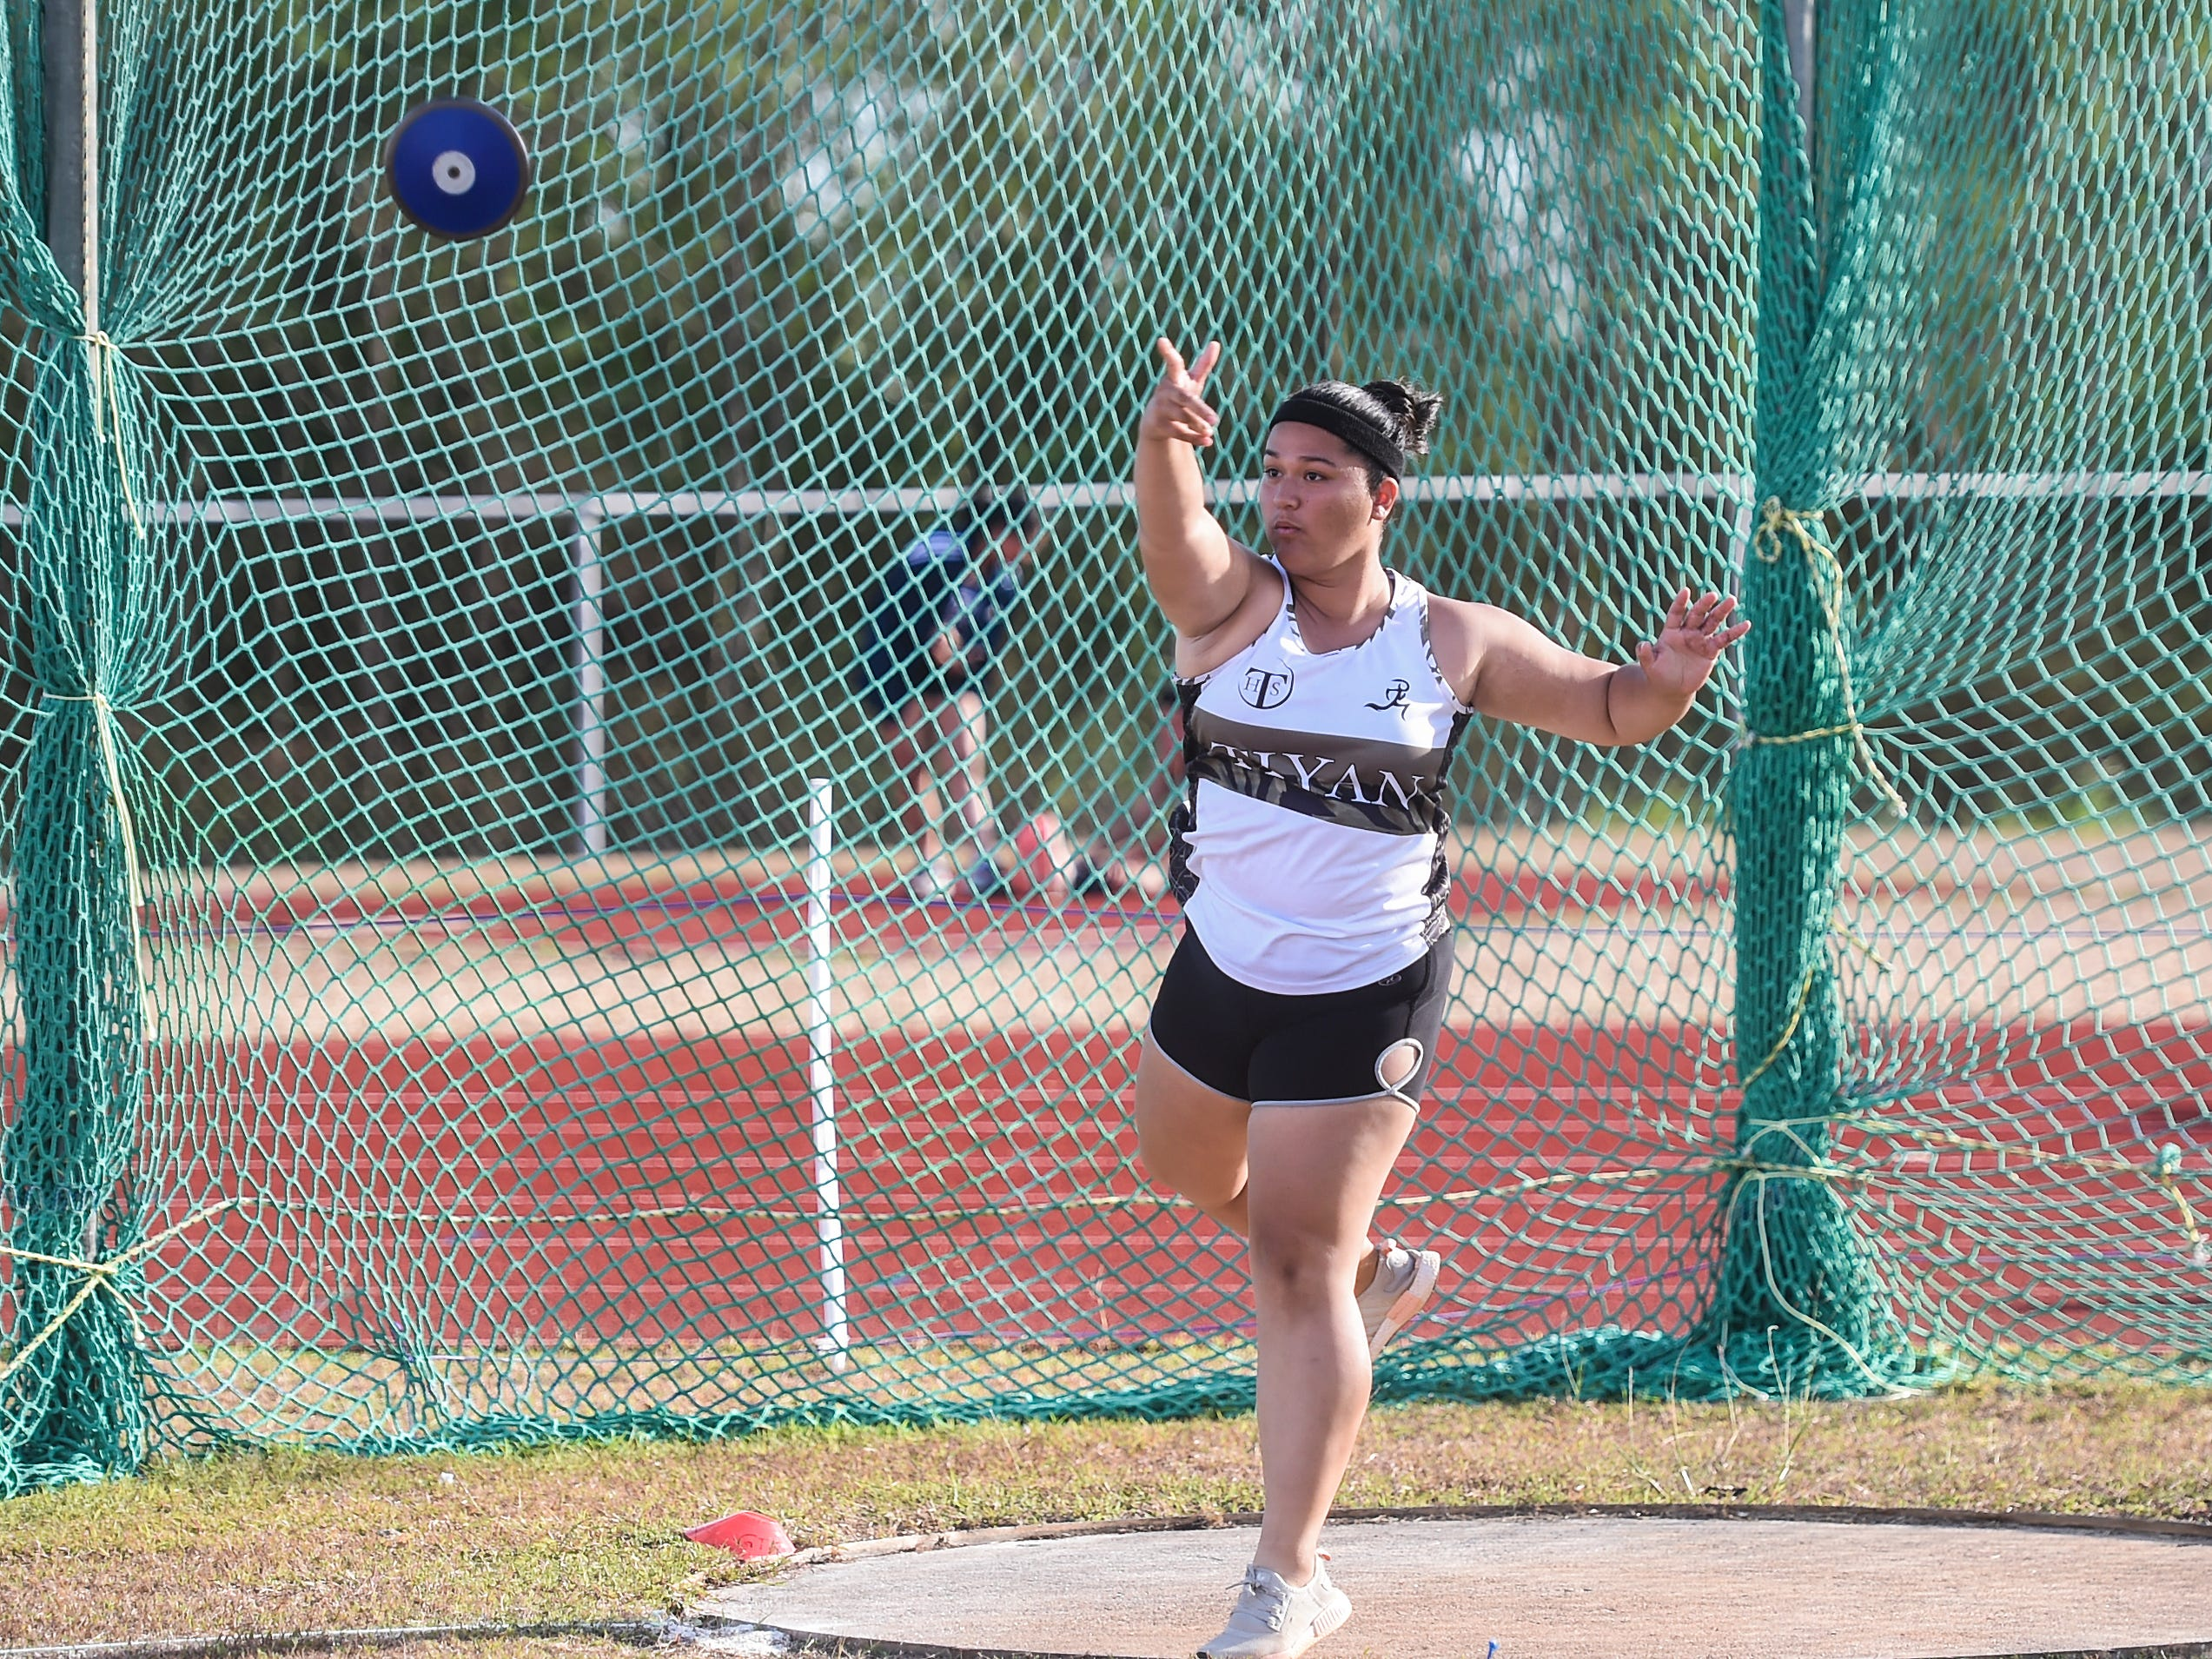 Tiyan High's Reniah Ungacta, 18, competes in the 1kg Discus Varsity during a IIAAG Track and Field meet at John F. Kennedy Ramsey Field in Tamuning on May 10, 2019.